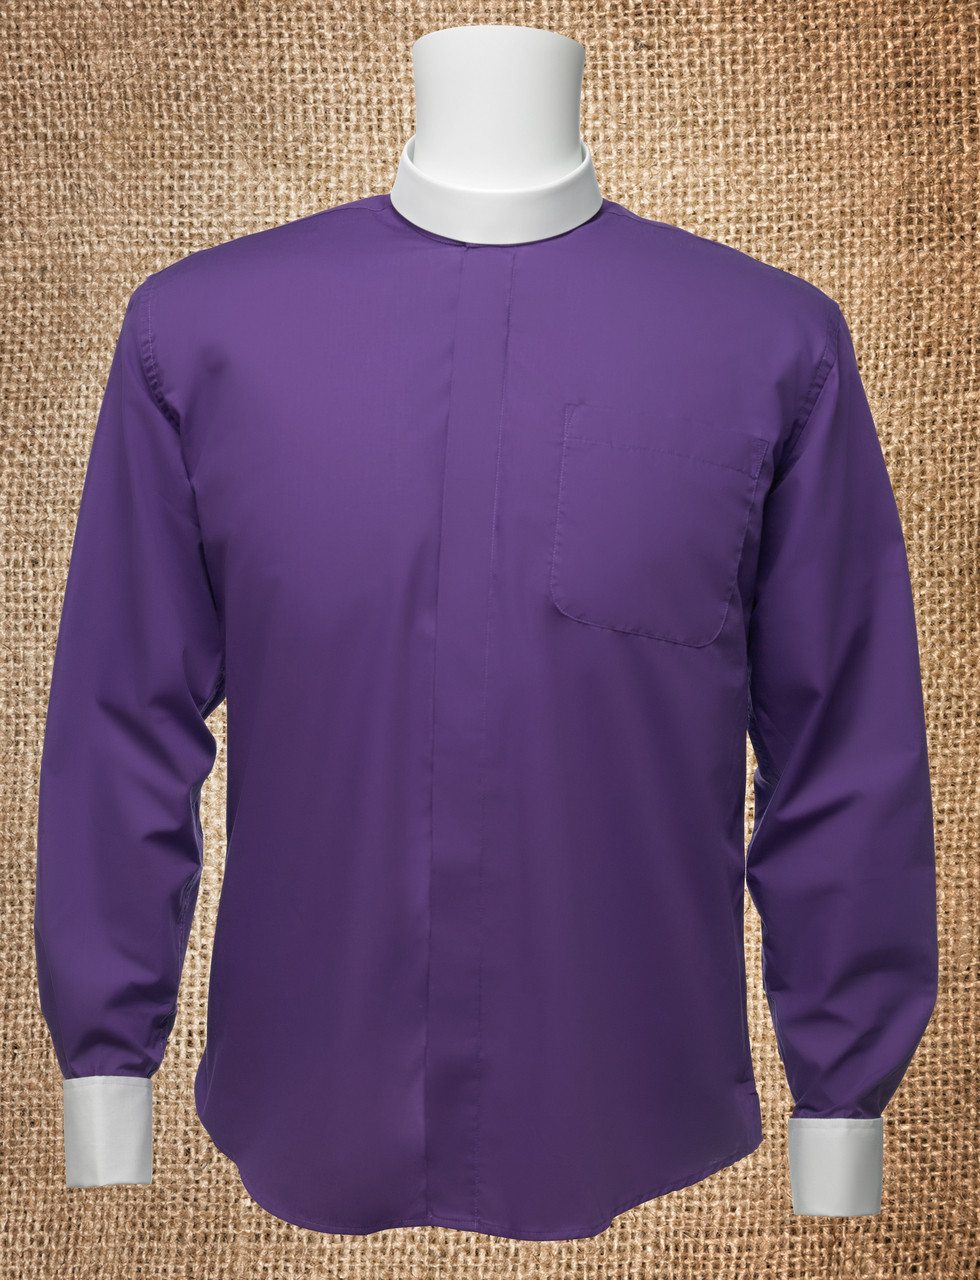 Mens Banded Collar Clergy Shirt Purple